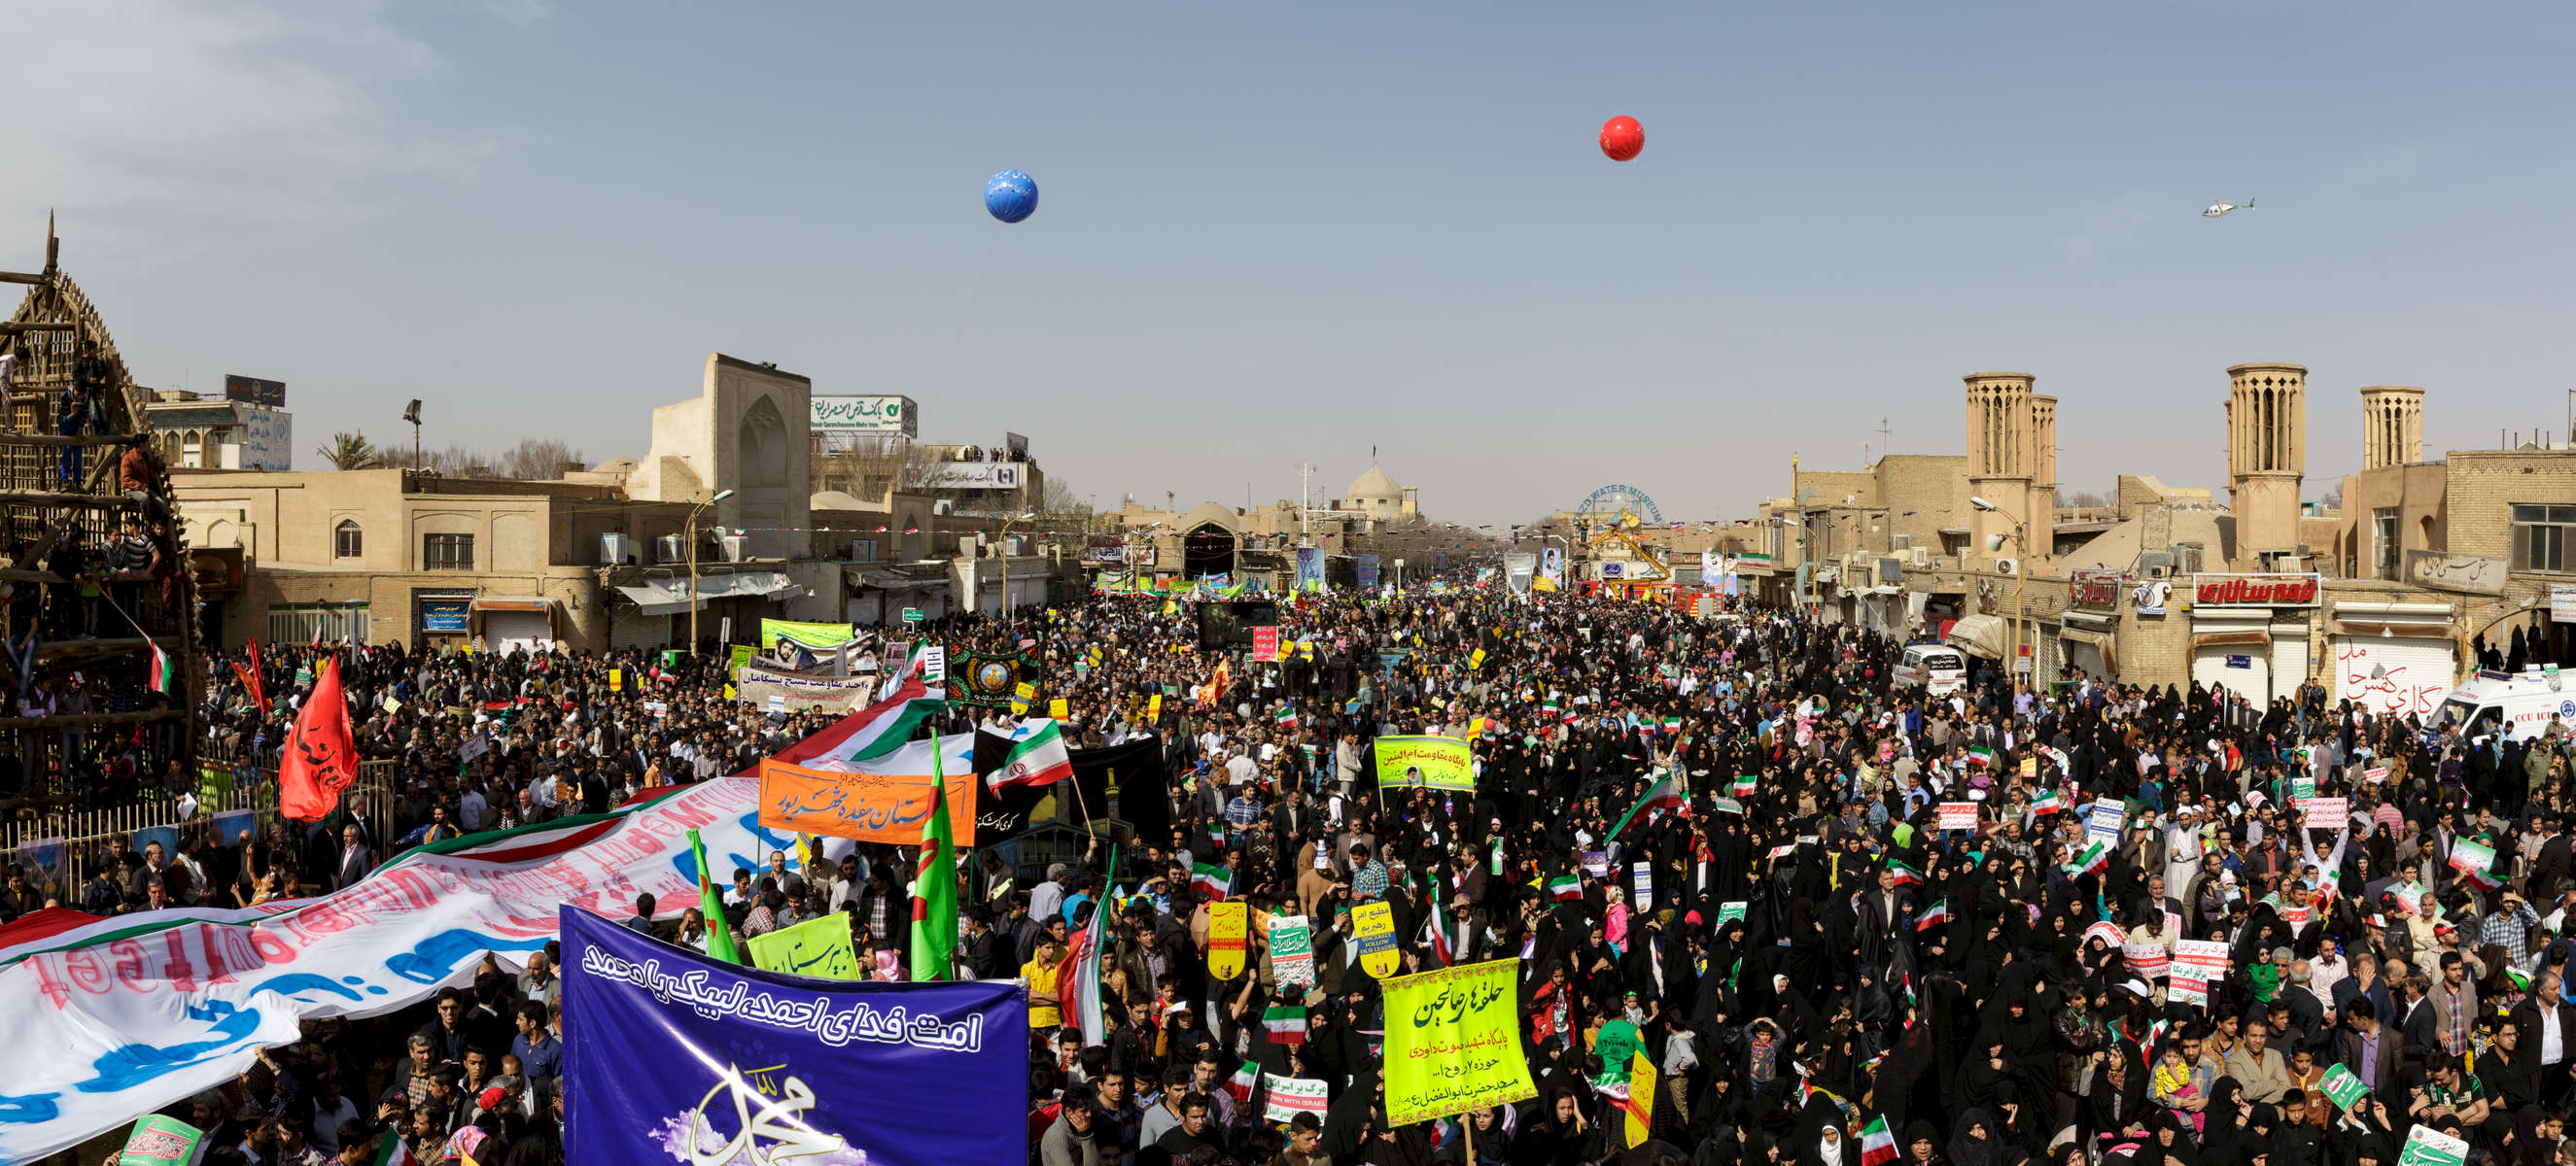 Protestors at a rally on Febuary 11th for the 36th anniversary of the Islamic revoloution, in Yazd, Fars province.  The city has a population of around one million.  Perhaps 20,000 turned up for the tightly controlled exercise in government propoganda.